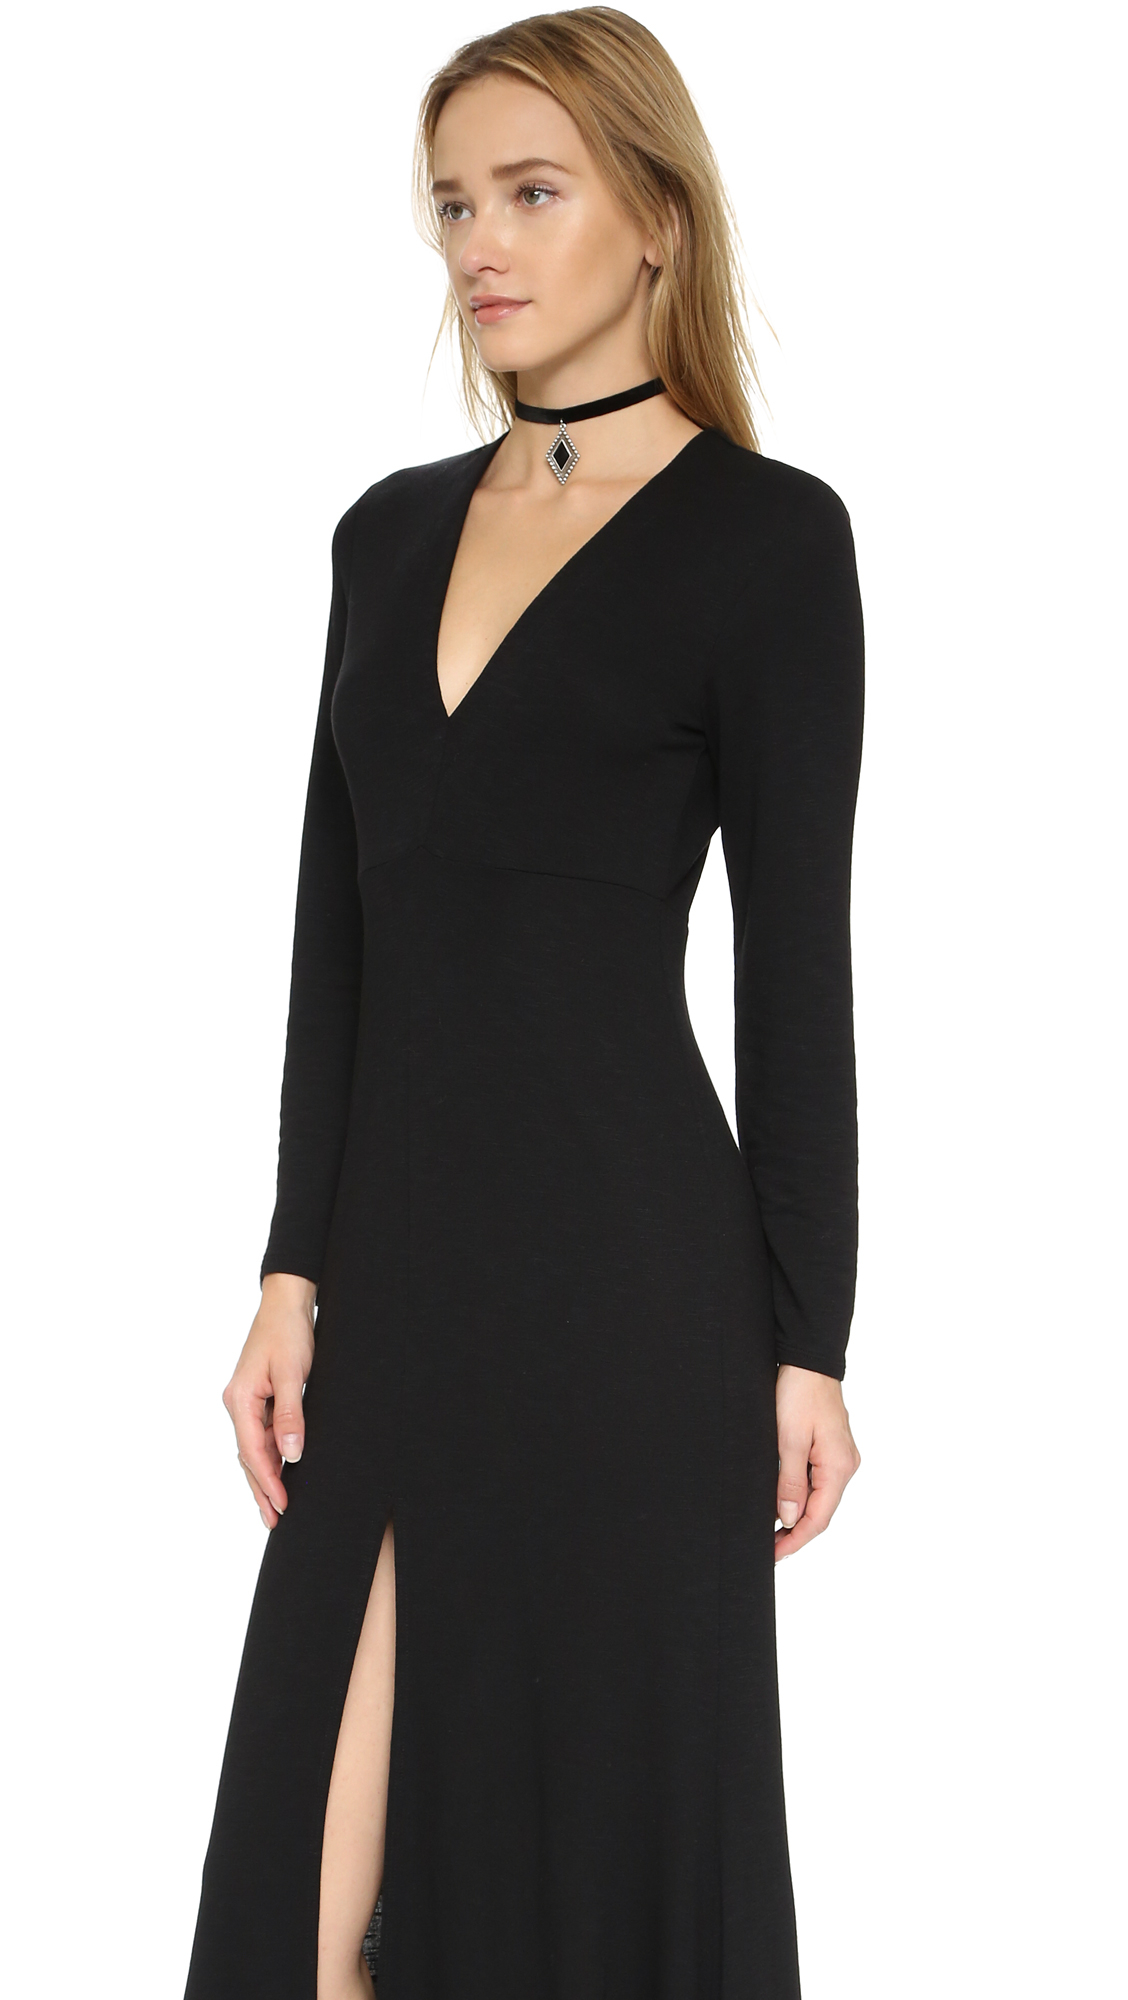 Lanston Long Sleeve Maxi Dress in Black | Lyst